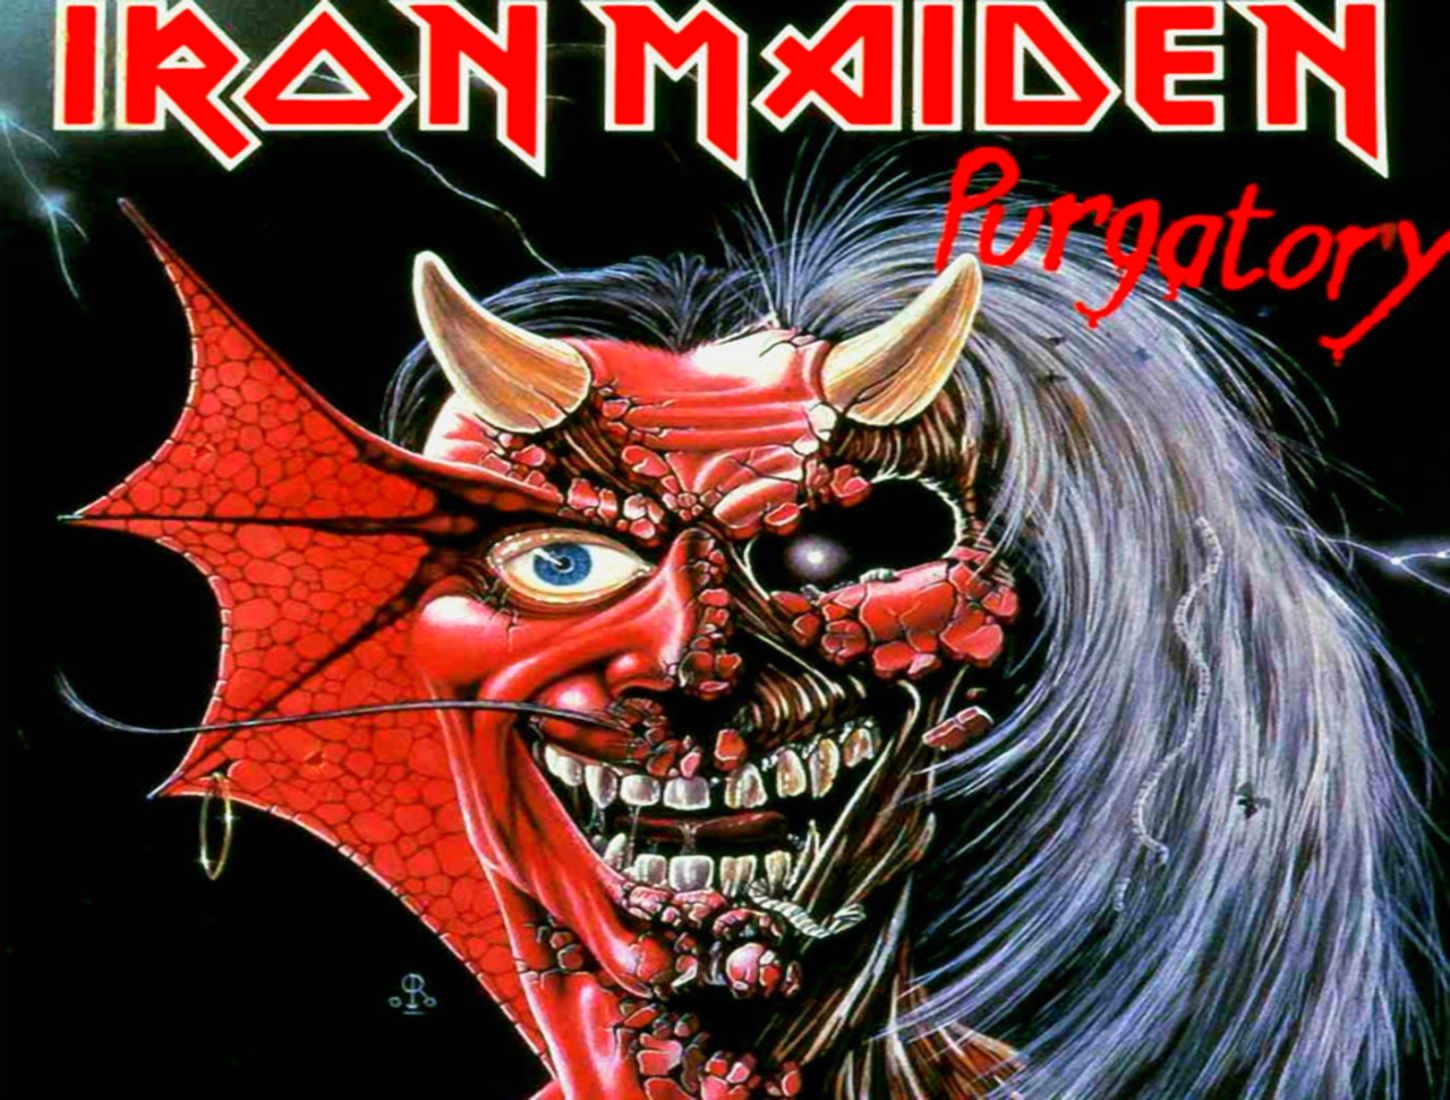 iron maiden wallpapers covers - photo #16